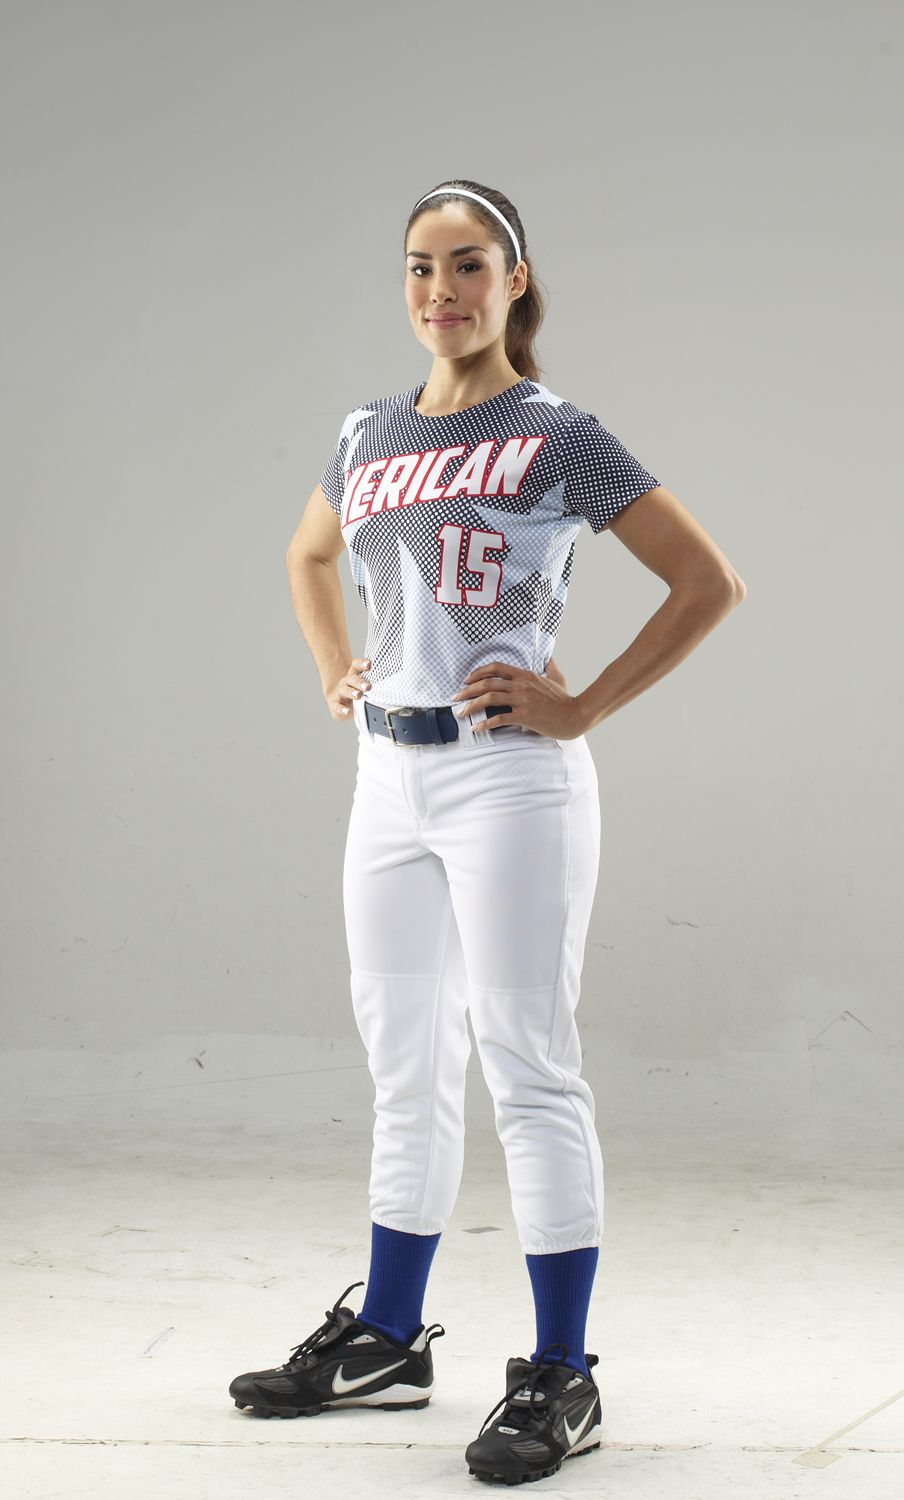 e289d3dc5 Custom sublimated softball All-Star Jerseys. Personalized for every member  of the team